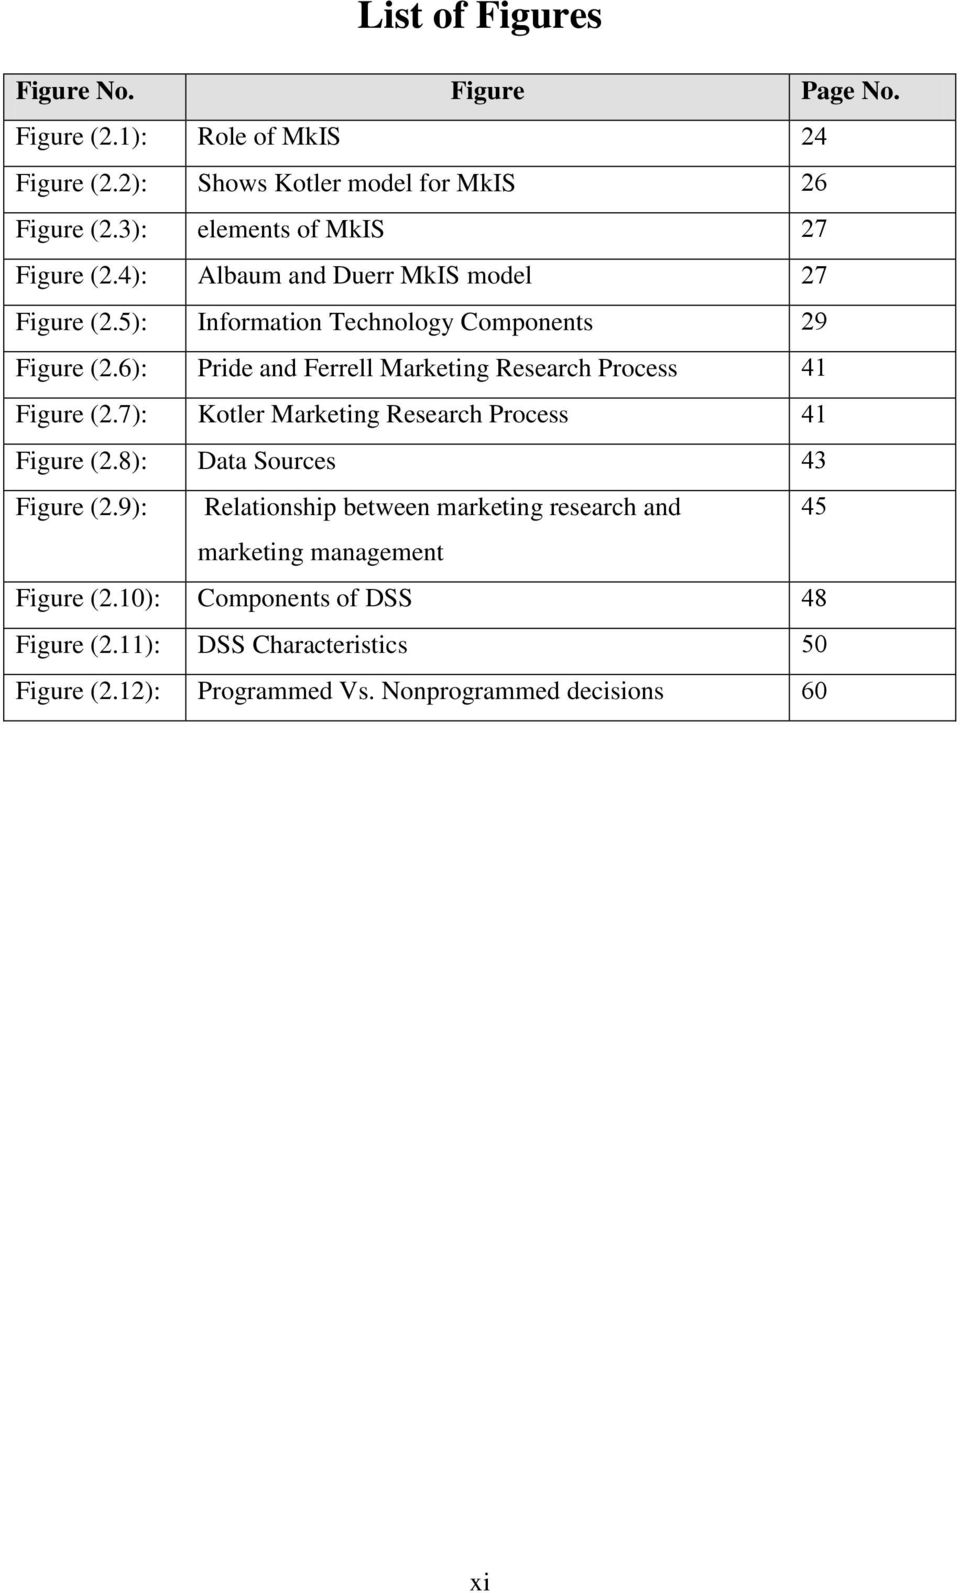 6): Pride and Ferrell Marketing Research Process 41 Figure (2.7): Kotler Marketing Research Process 41 Figure (2.8): Data Sources 43 Figure (2.